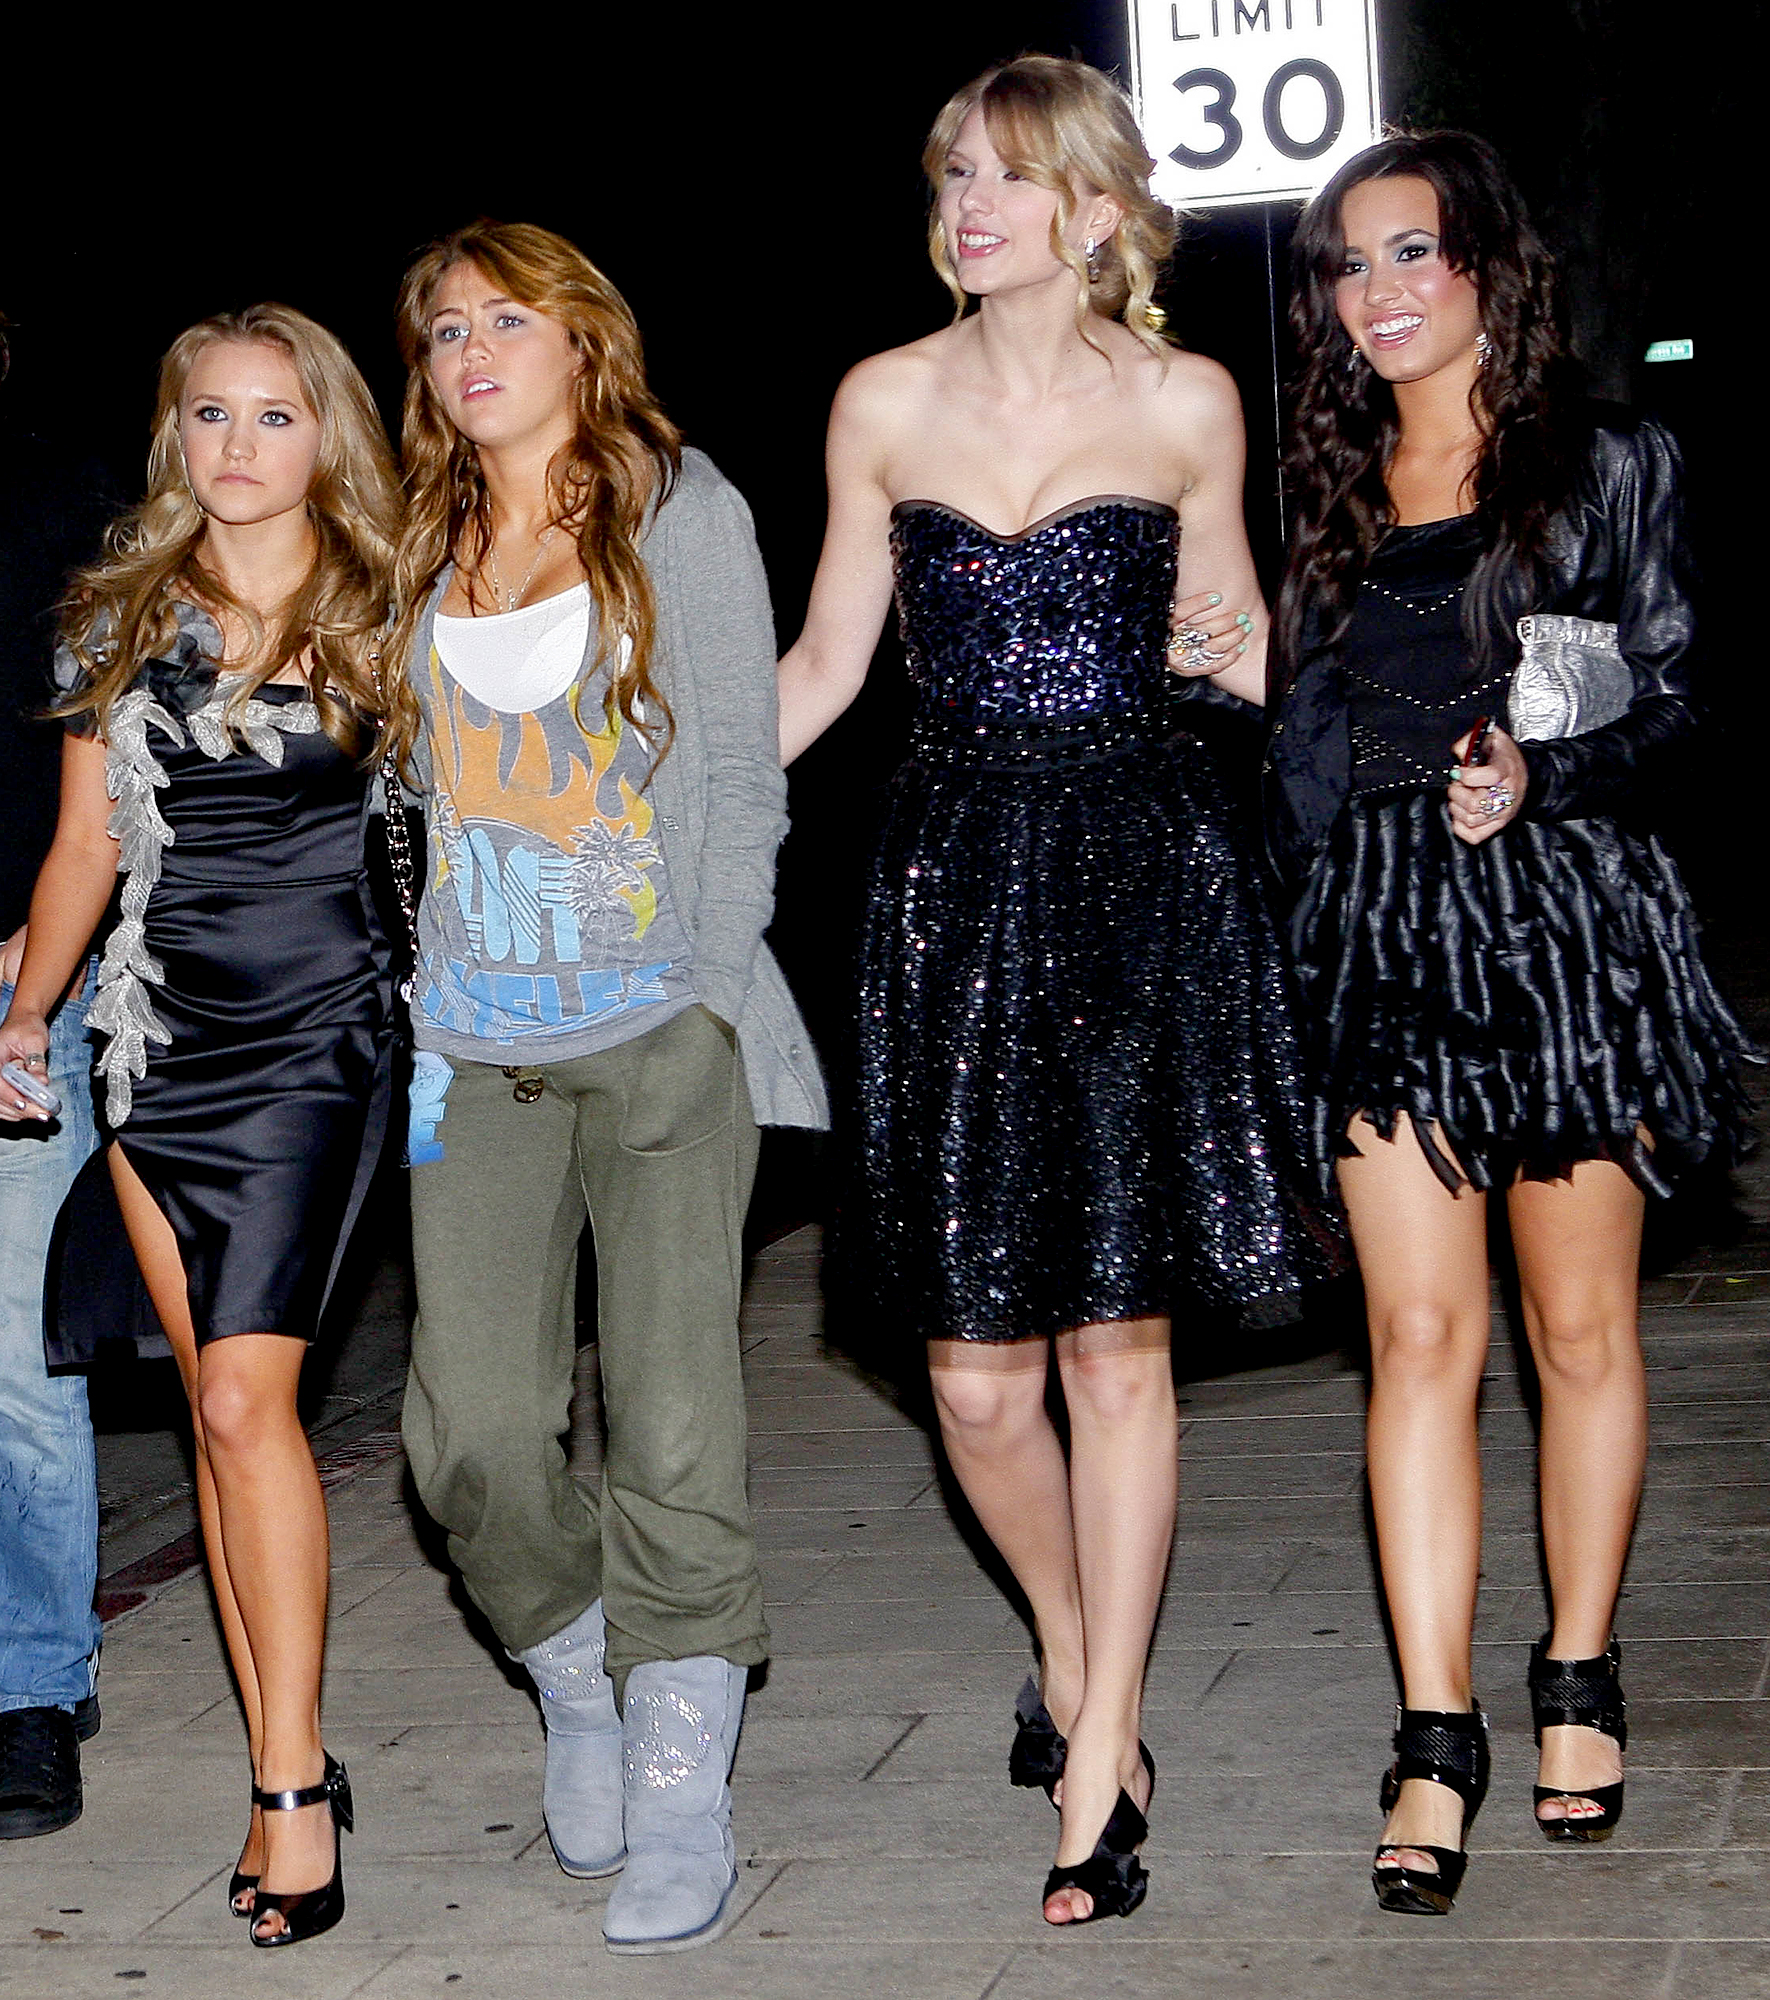 miley-cyrus-emily-osment-taylor-swift-demi-lovato